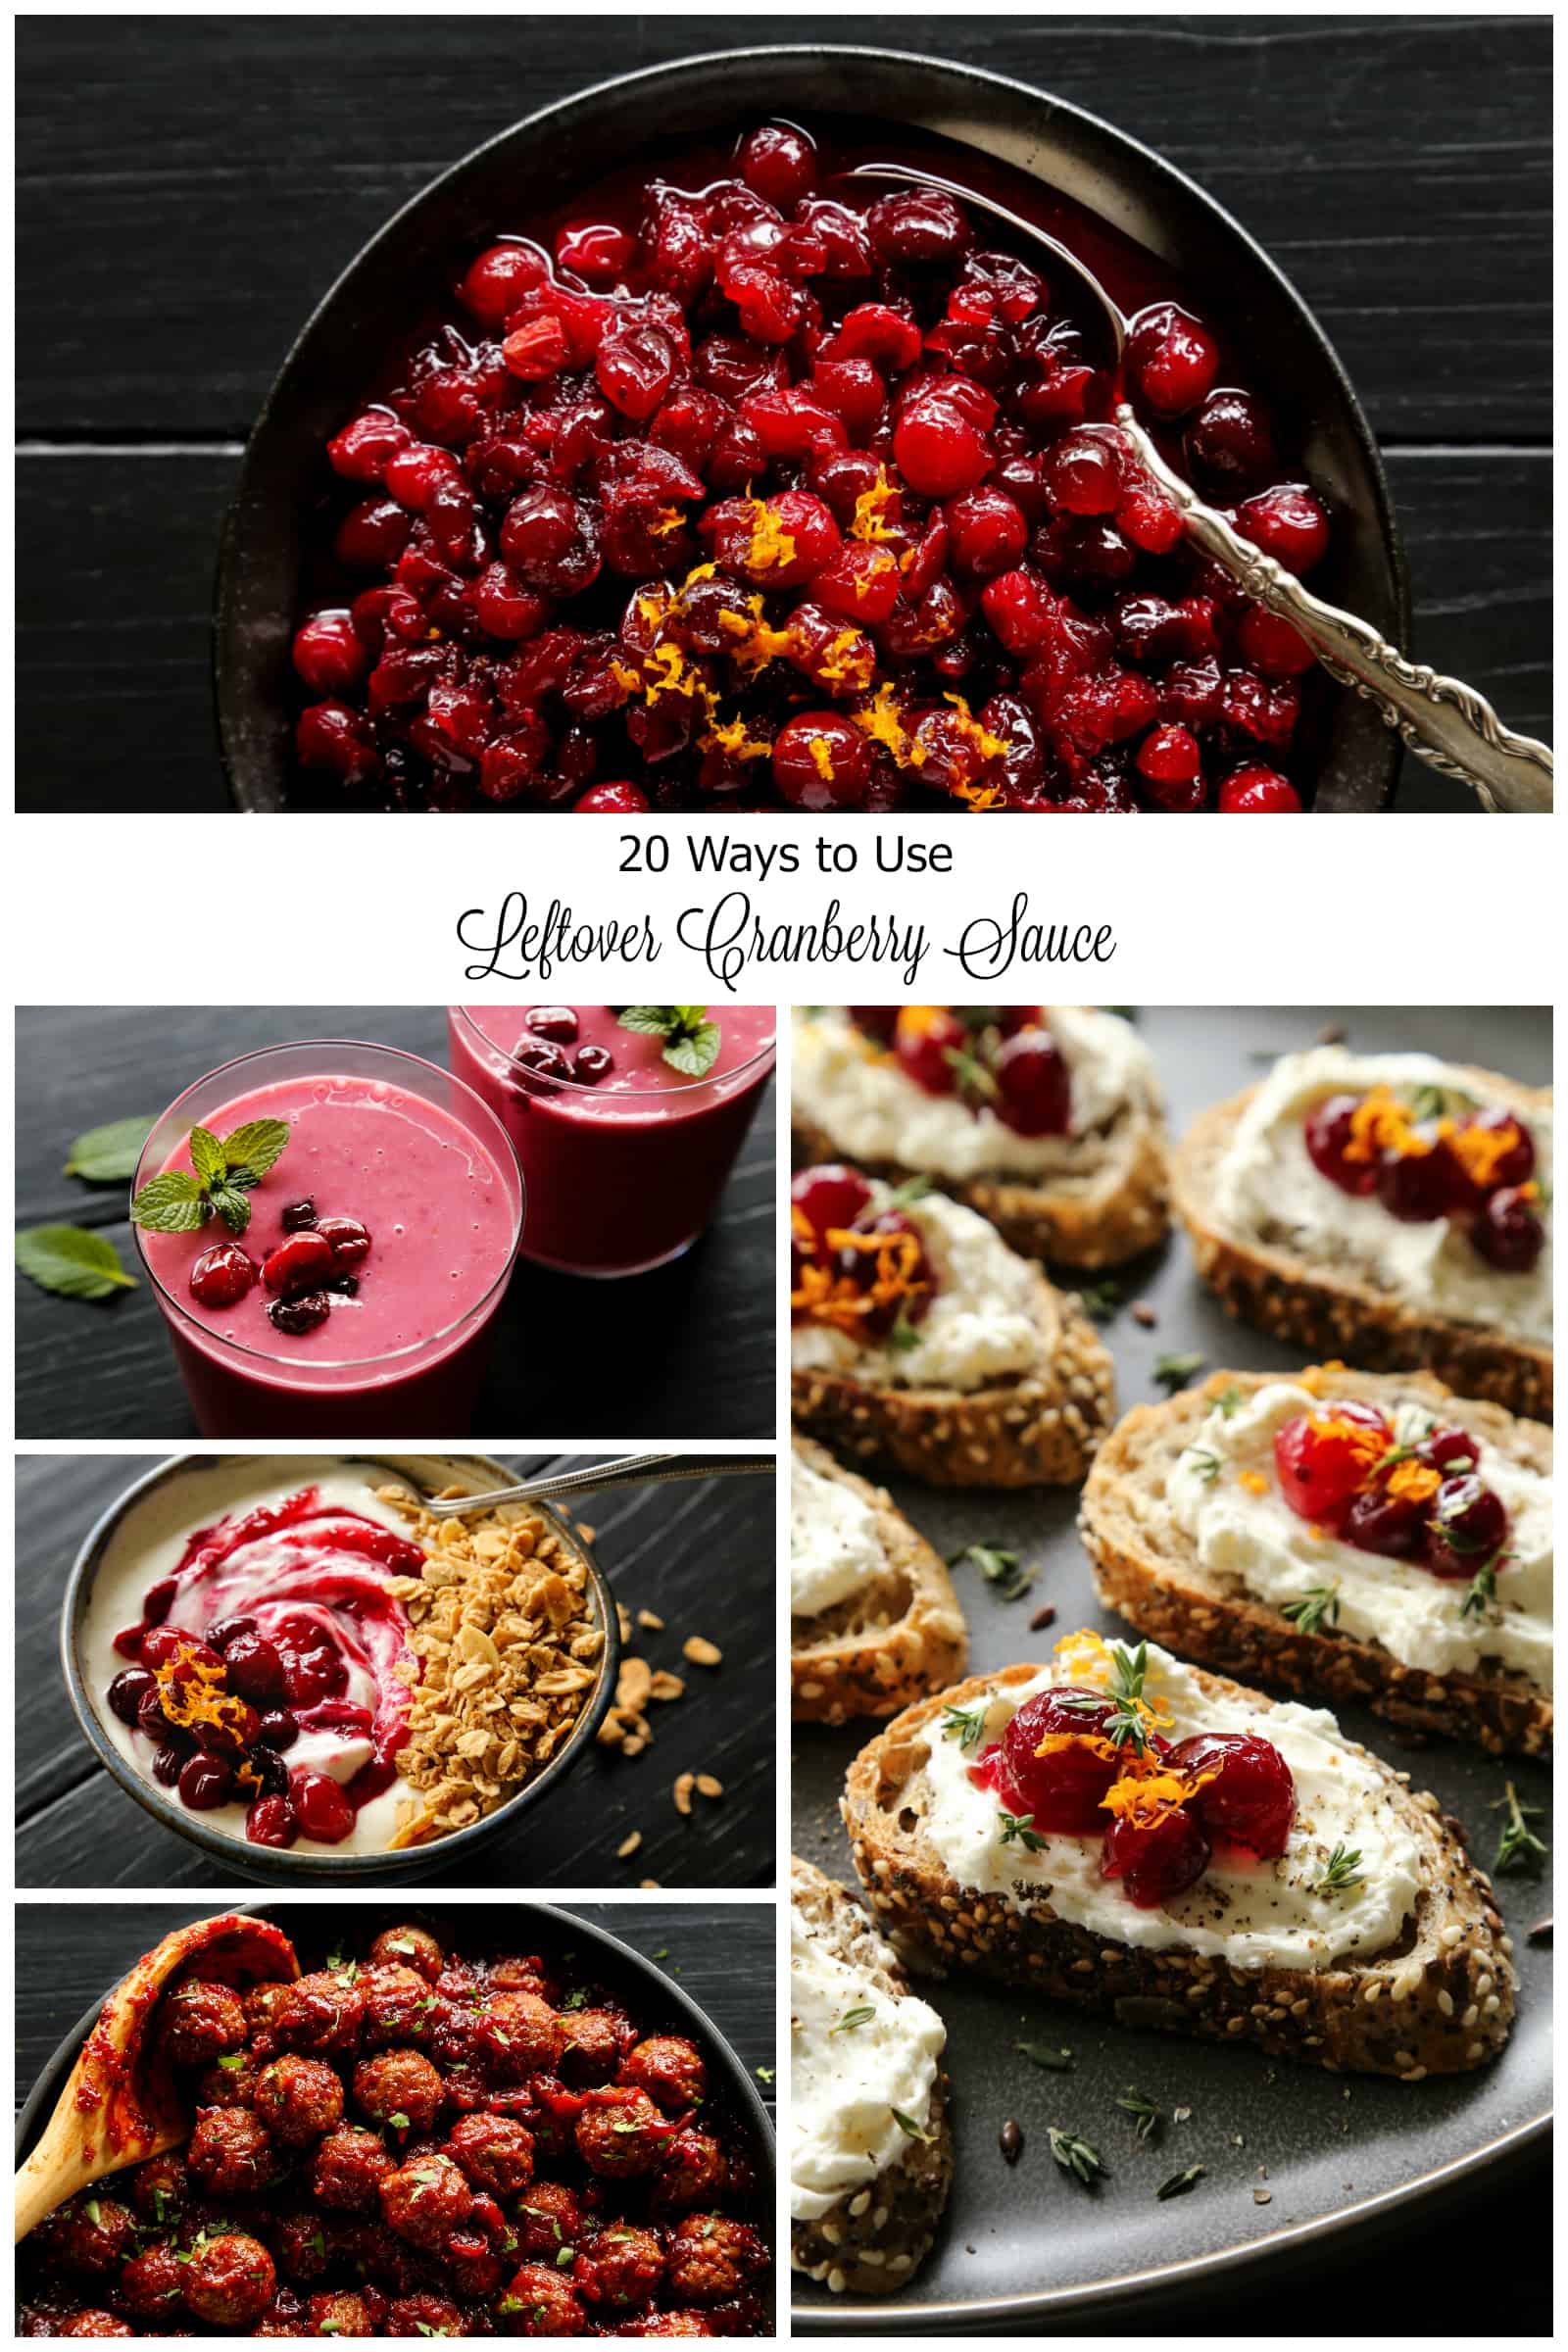 20 Ways to Use Leftover Cranberry Sauce from afarmgirlsdabbles.com